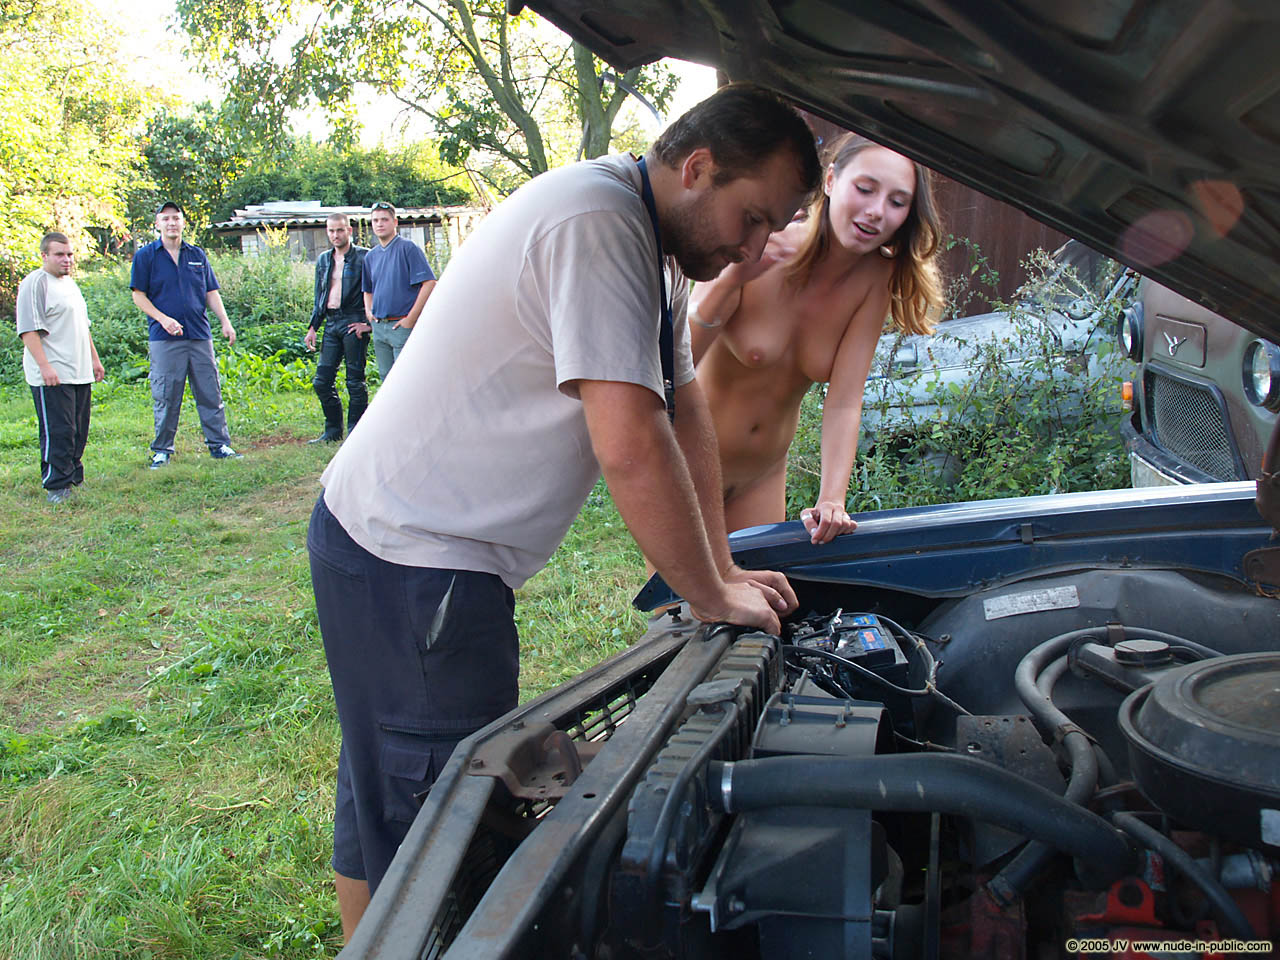 veronika-e-junkyard-cars-mechanic-nude-in-public-28